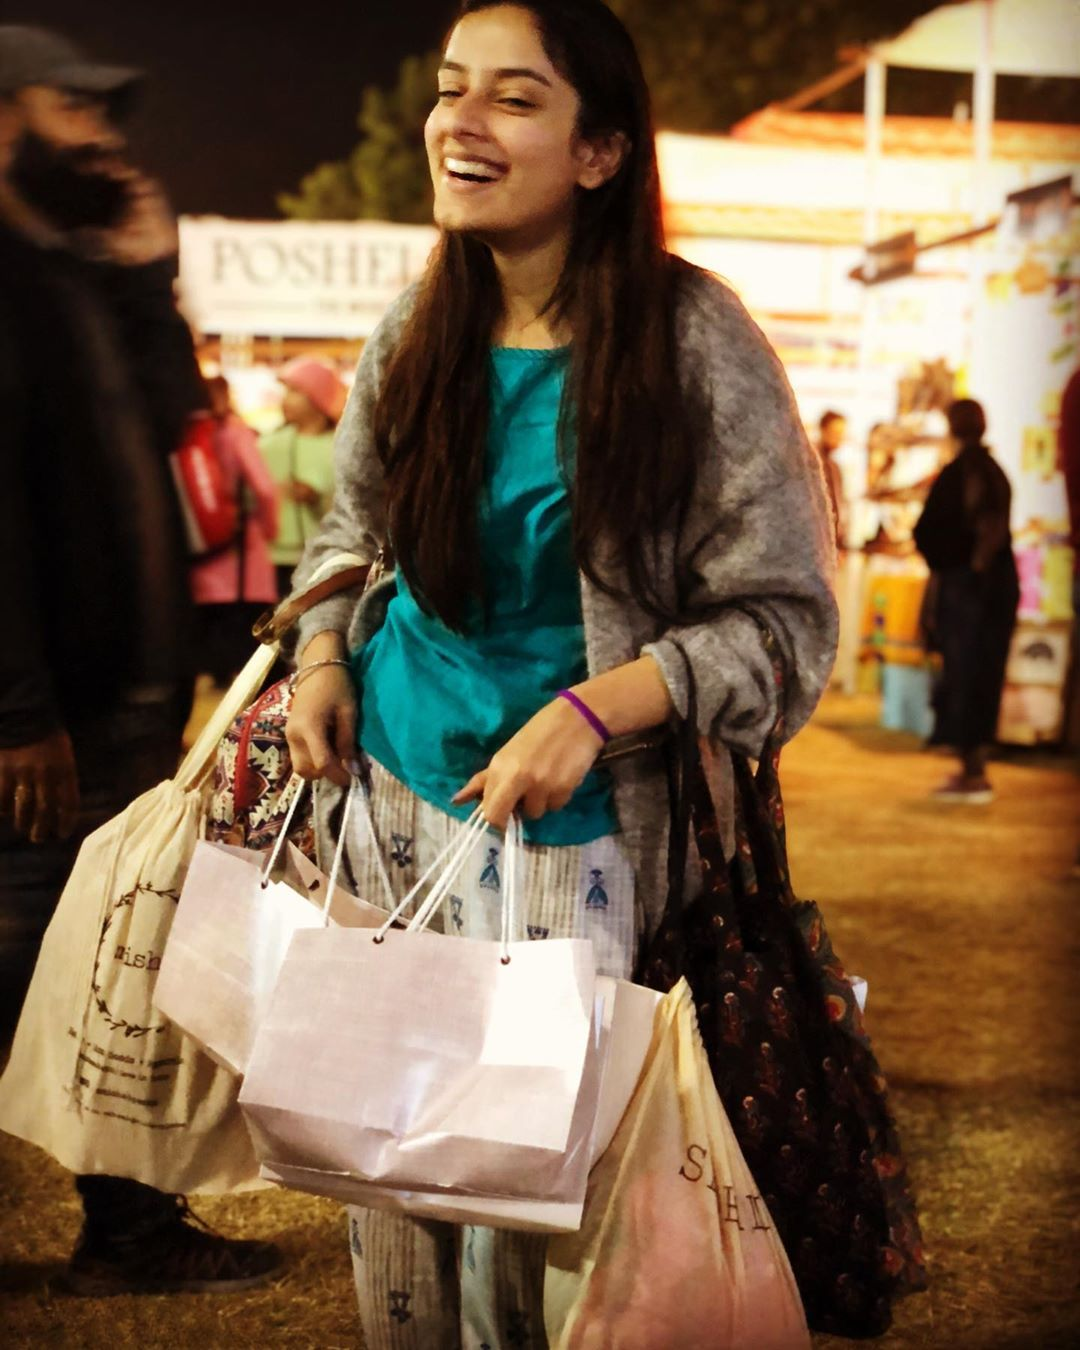 It's always shop o'clock at Weekend Window! . . . #shoppingbags #weekendwindow #shopping #Christmasandotherplans #chill #shopaholic #fun #FLEAstival